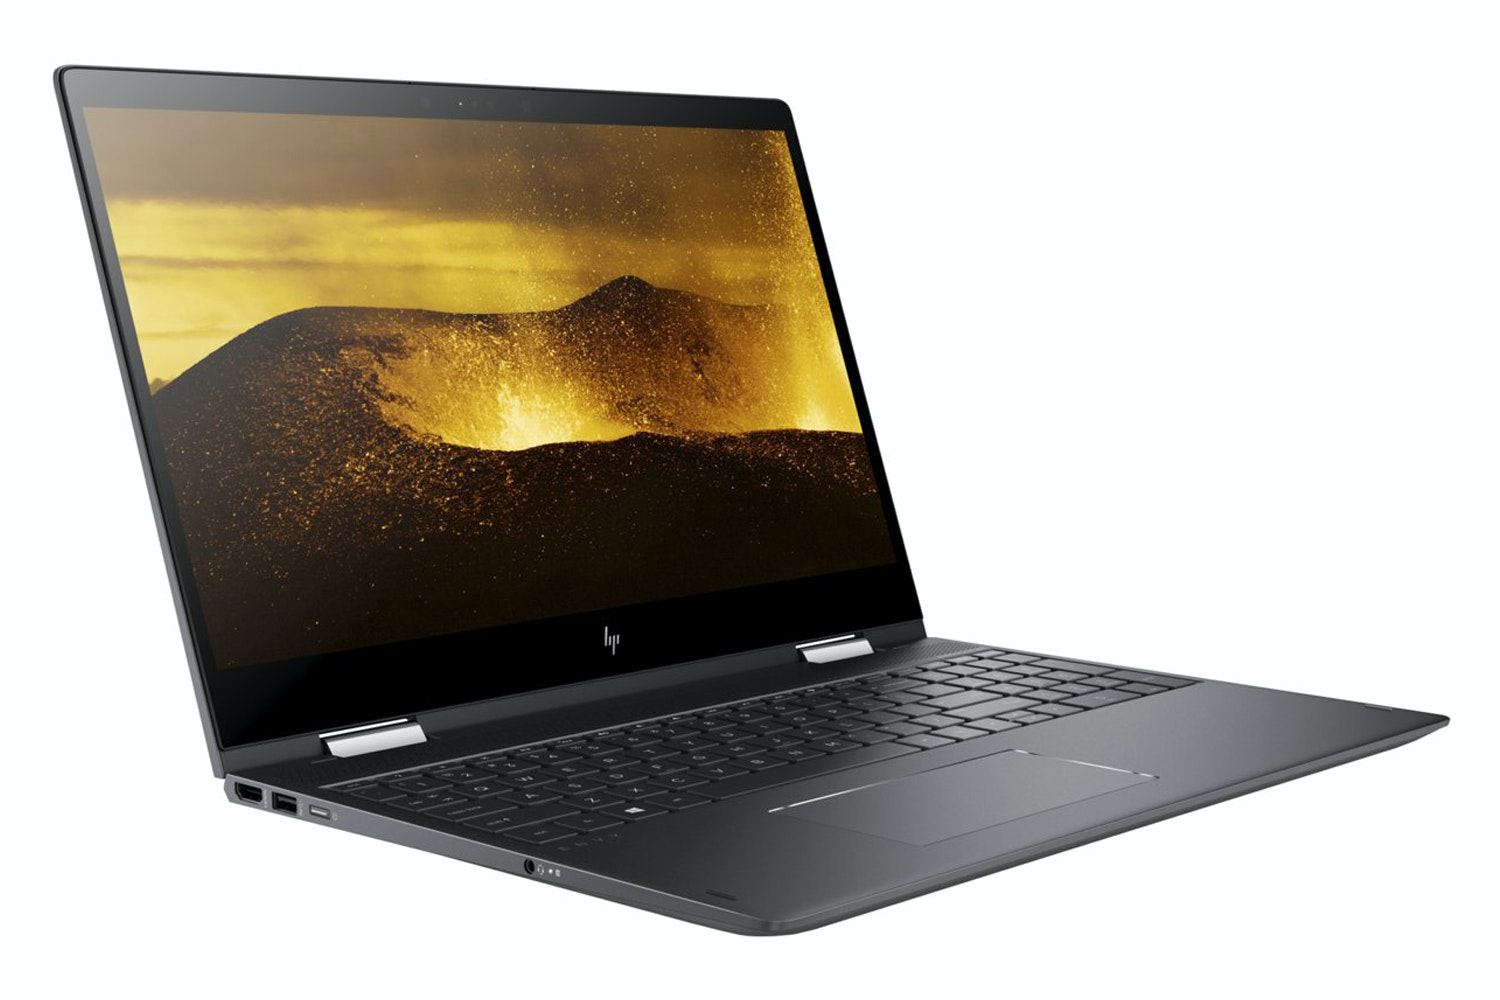 HP Envy X360 15.6"